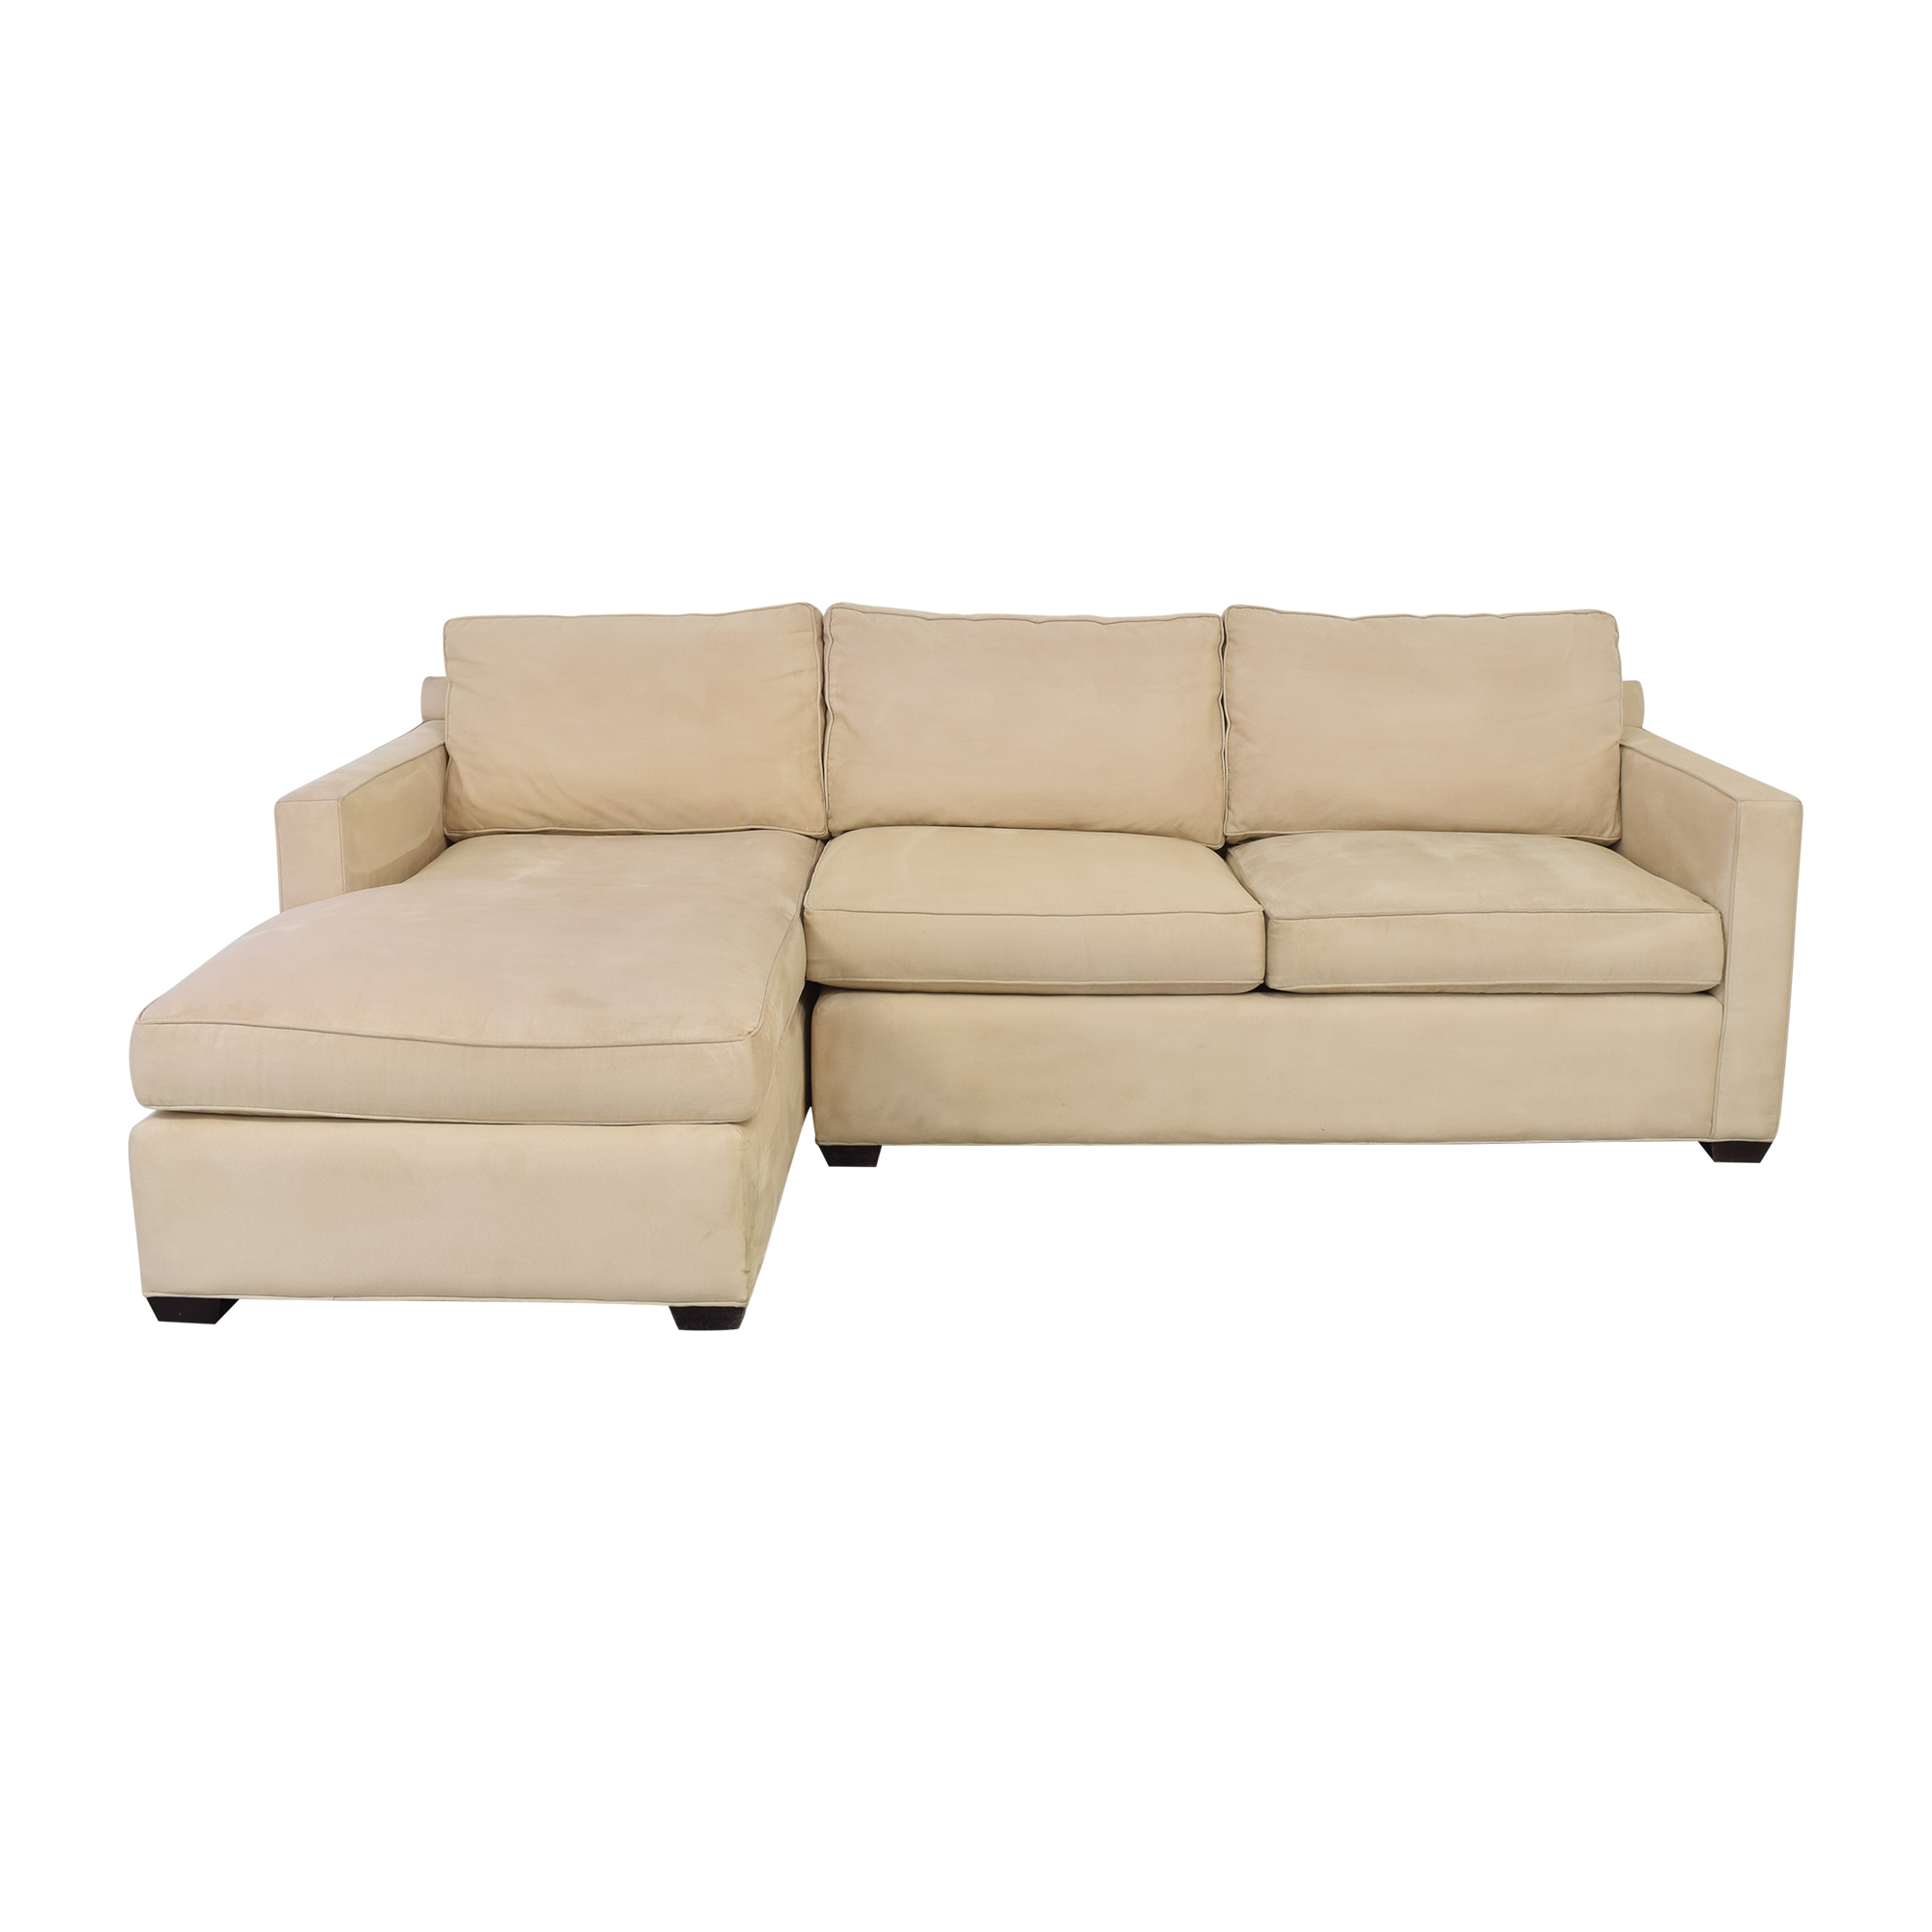 shop Crate & Barrel Davis Chaise Sectional Sofa Crate & Barrel Sofas